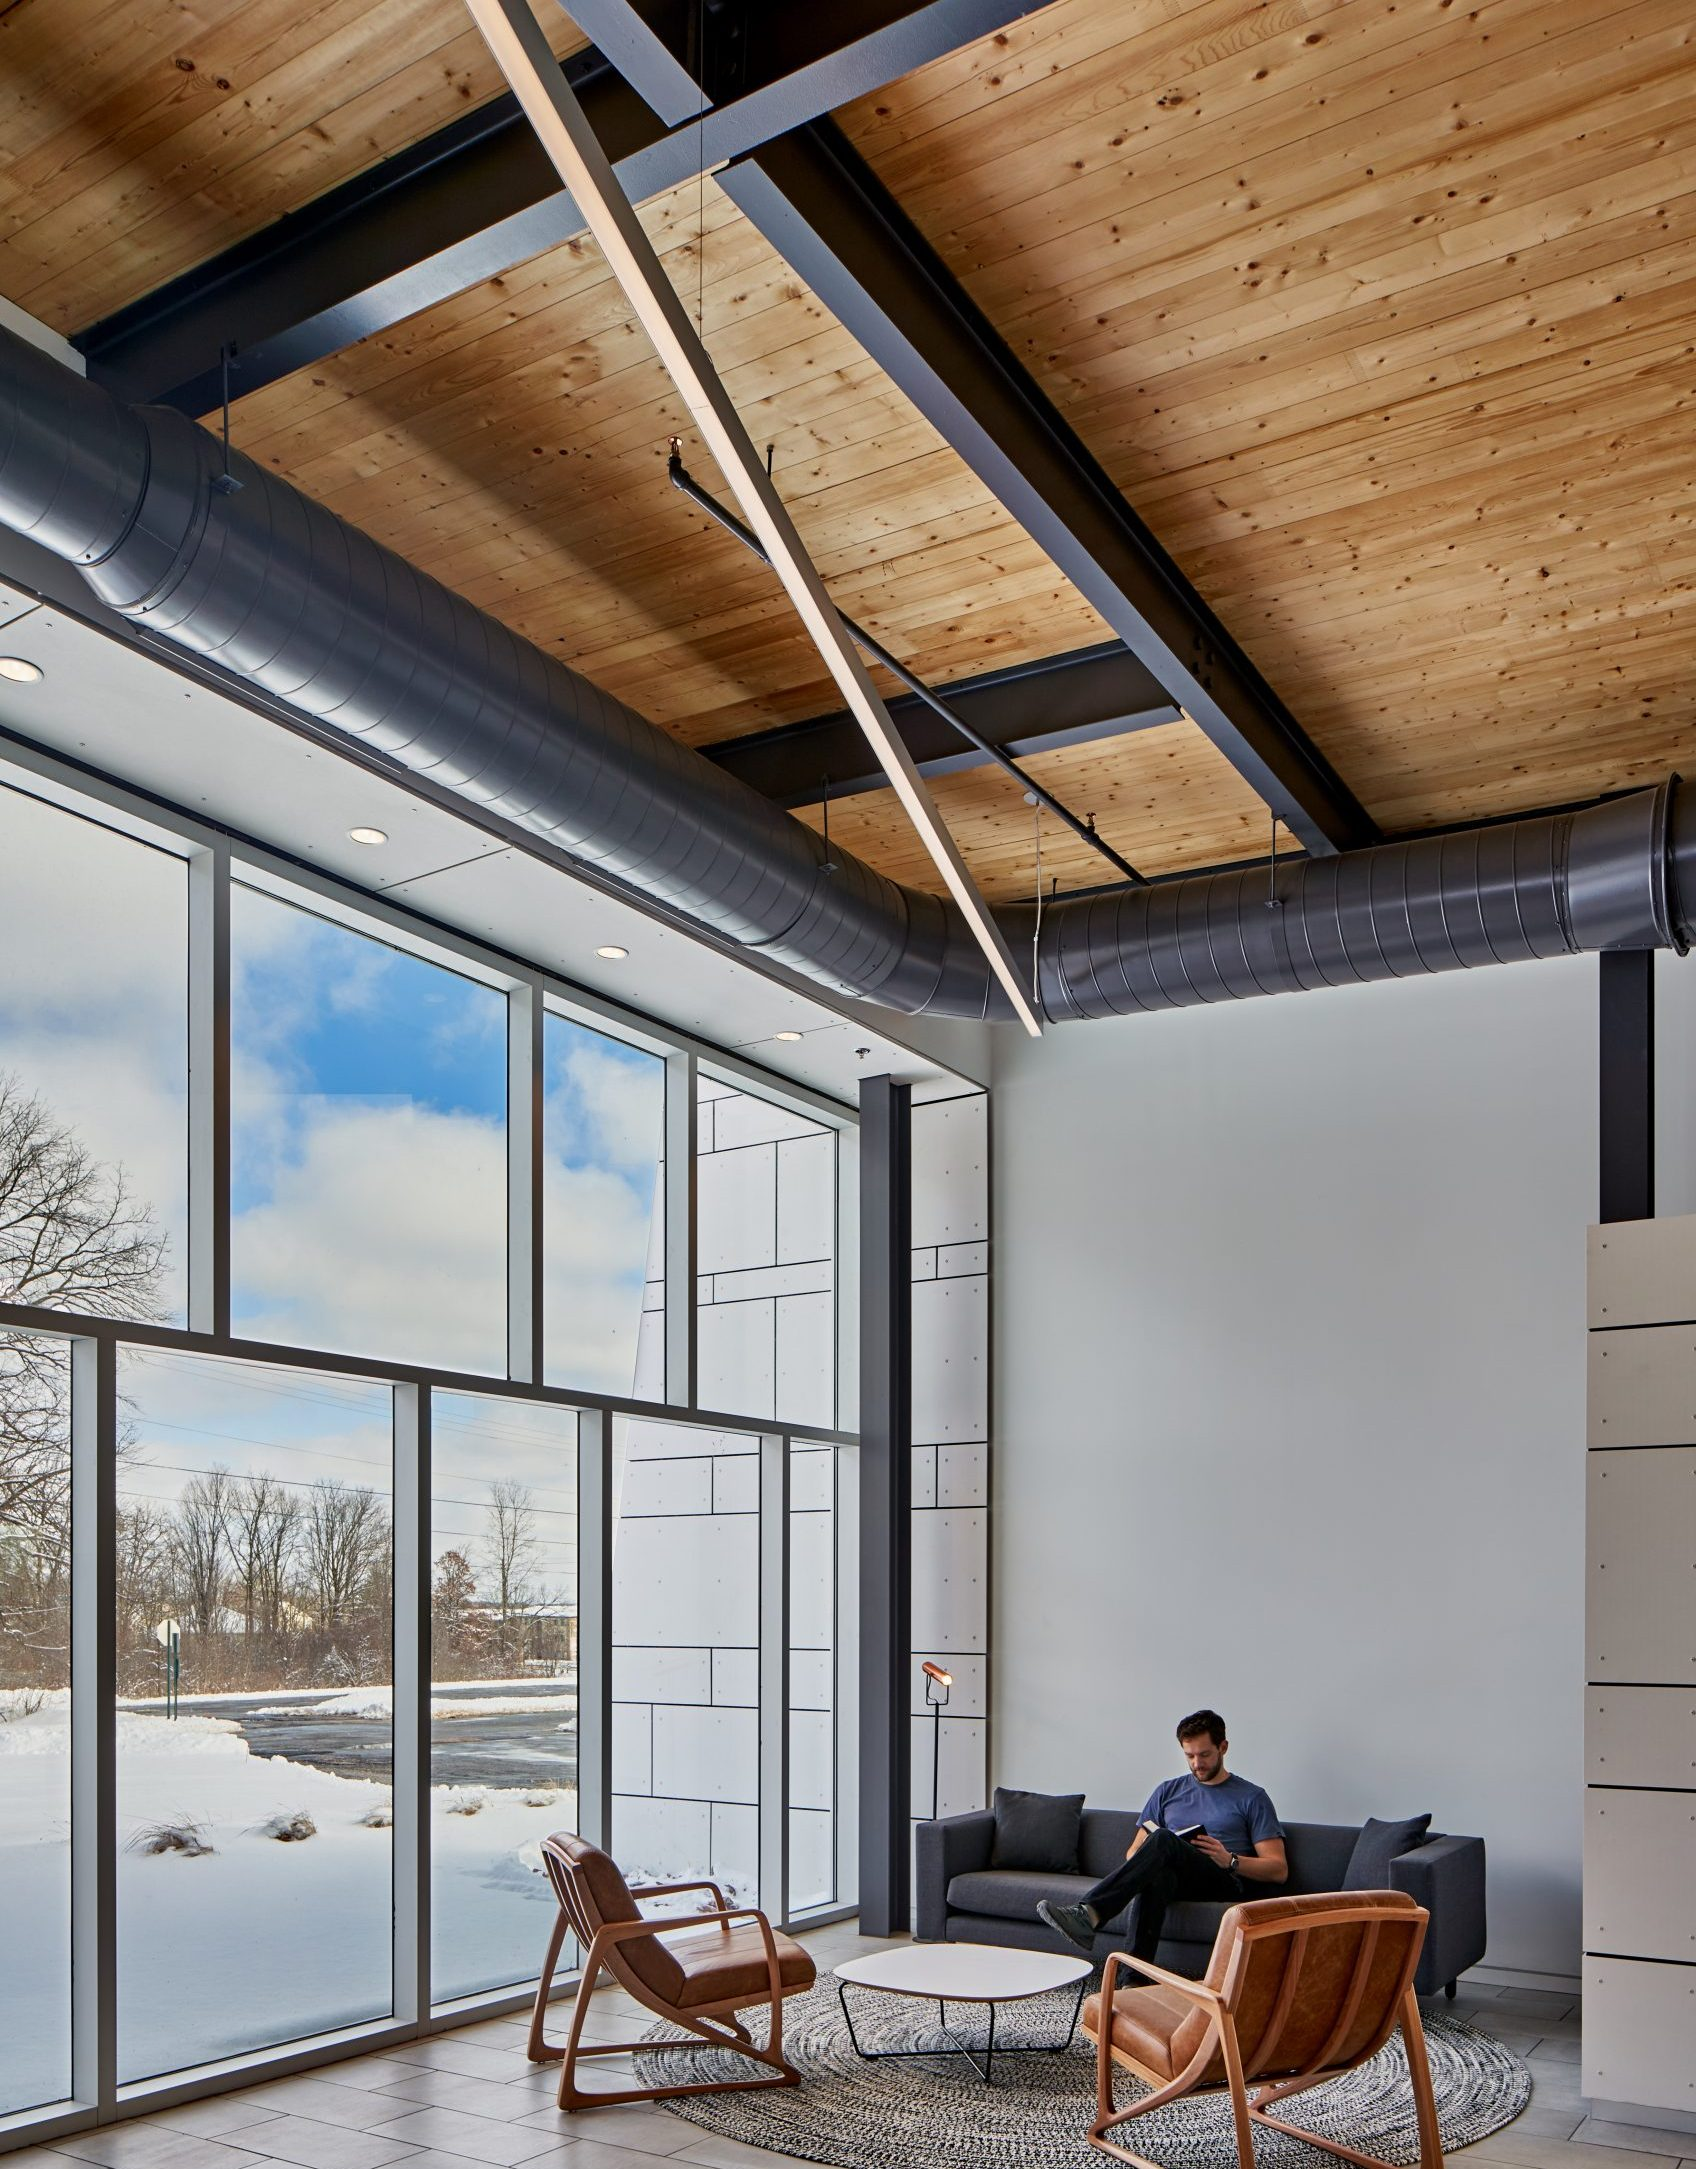 Interior view of sitting lounge and cross laminated timber ceiling at Grace Bible Church Project in Ann Arbor Michigan Architecture and Interior Design